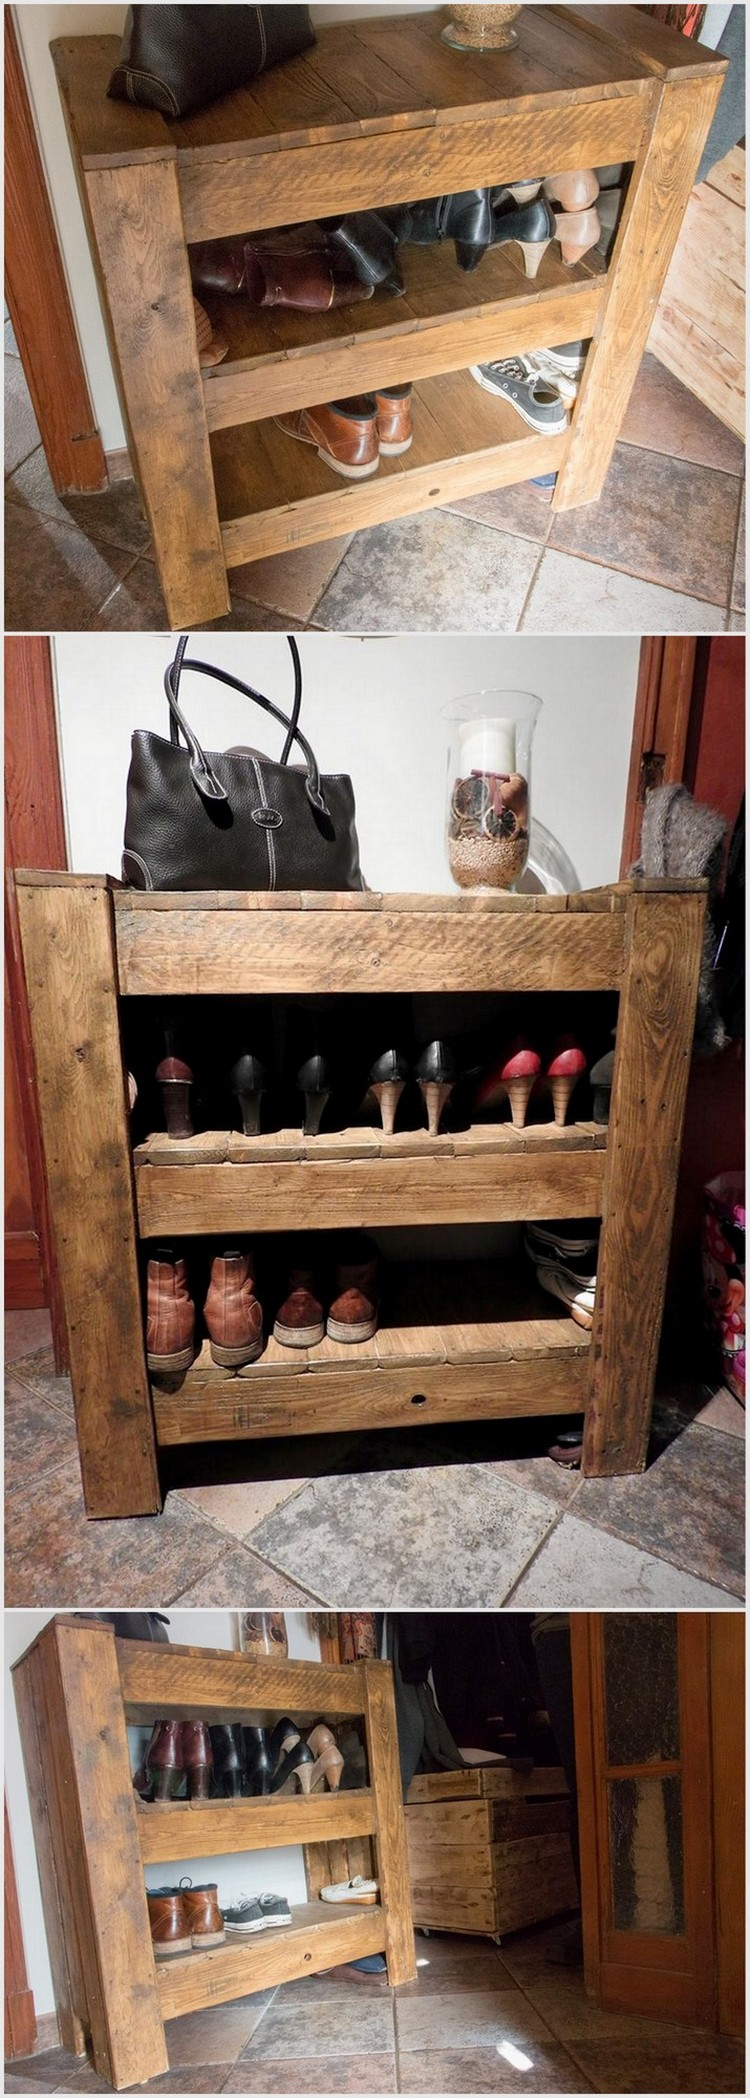 Classic ideas for wood pallet repurposing pallet wood for Repurposed pallet projects